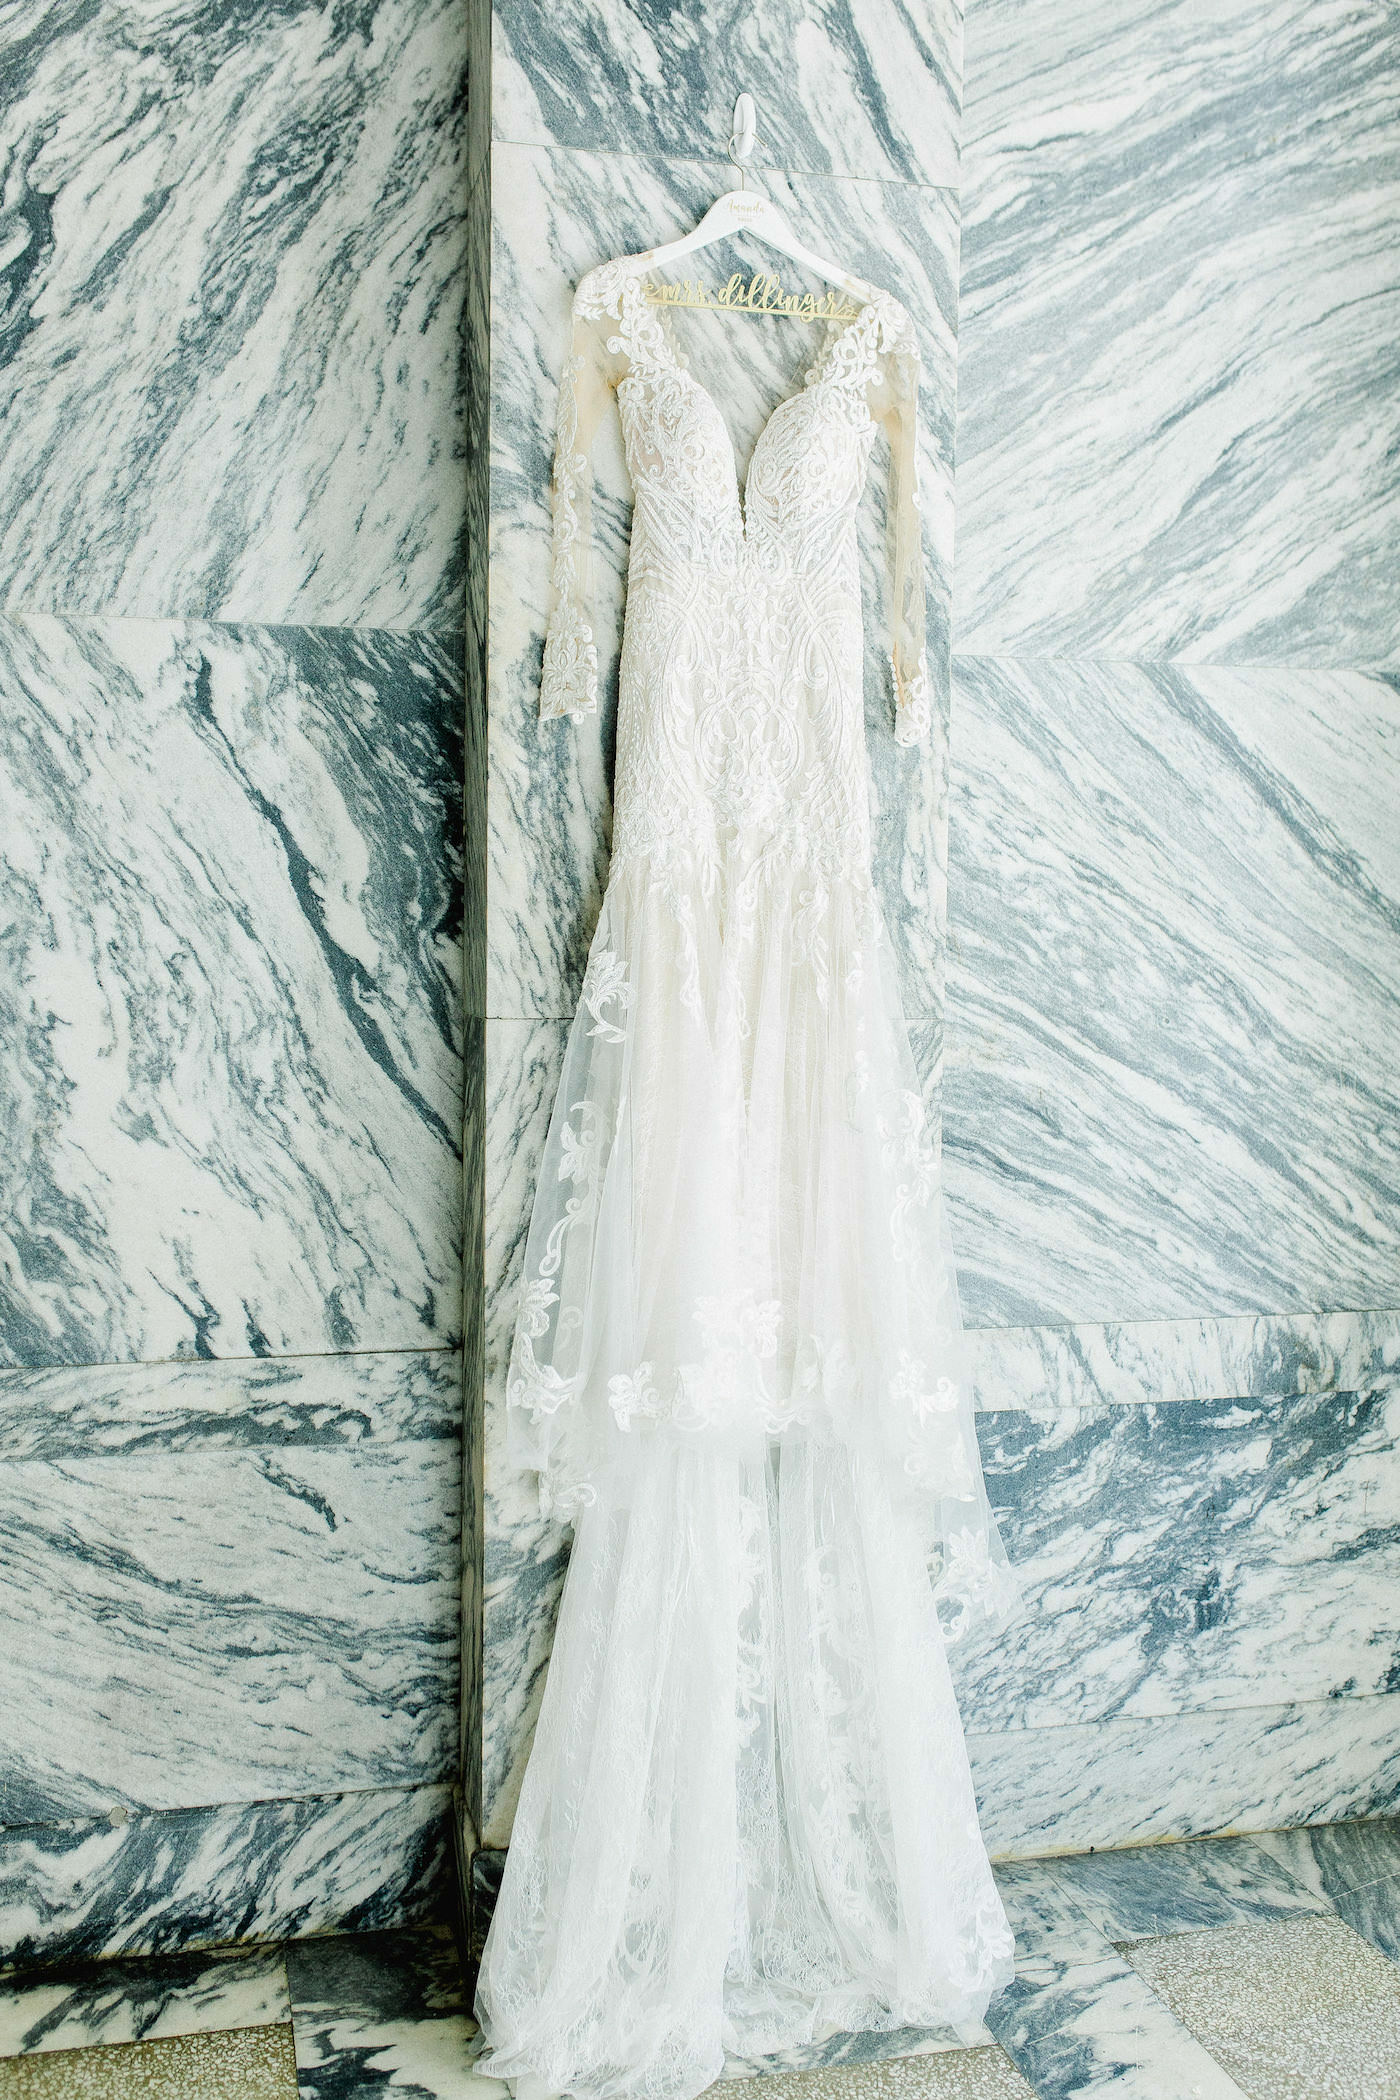 Elegant Illusion Lace Sleeve Deep Sweetheart Neckline Fit and Flare Tulle Skirt Wedding Dress against Marble Wall of Le Meridien Hotel in Downtown Tampa | Florida Wedding Planner Breezin' Weddings